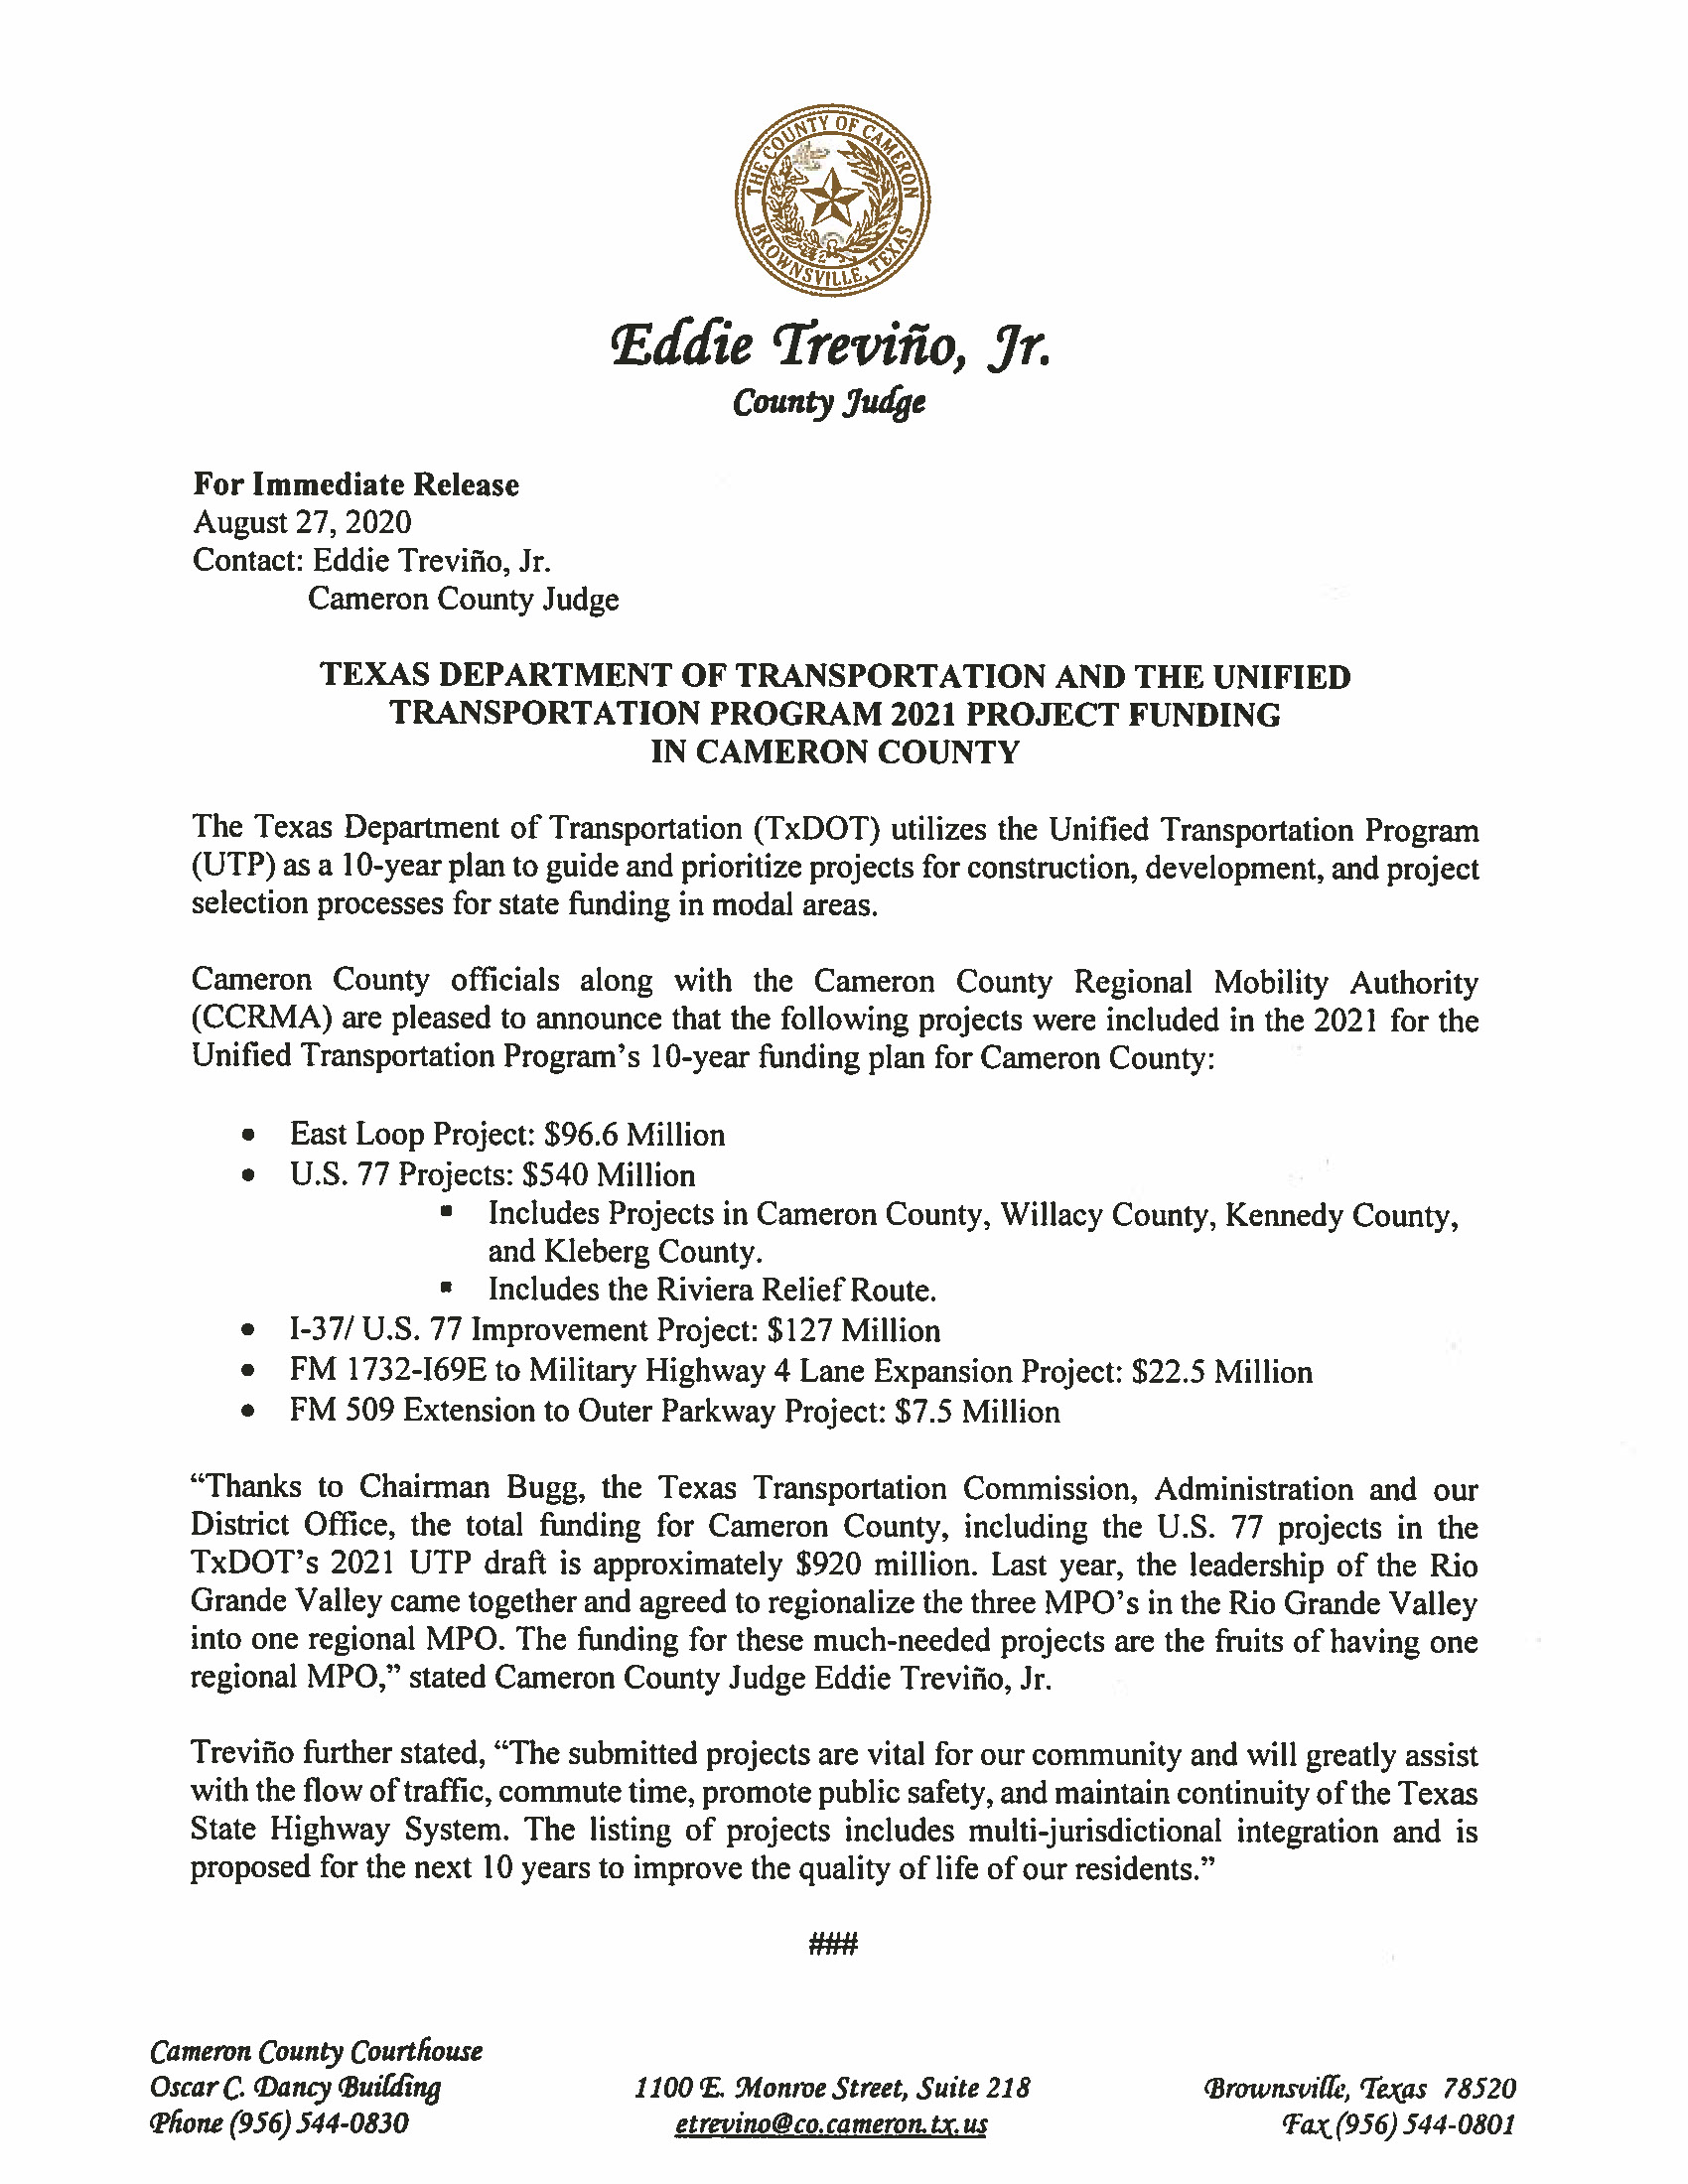 08.27.2020 Texas Department of Transportation and the Unified Transportation Program 2021 Project Funding in Cameron County - Cameron County Housing Authority Application